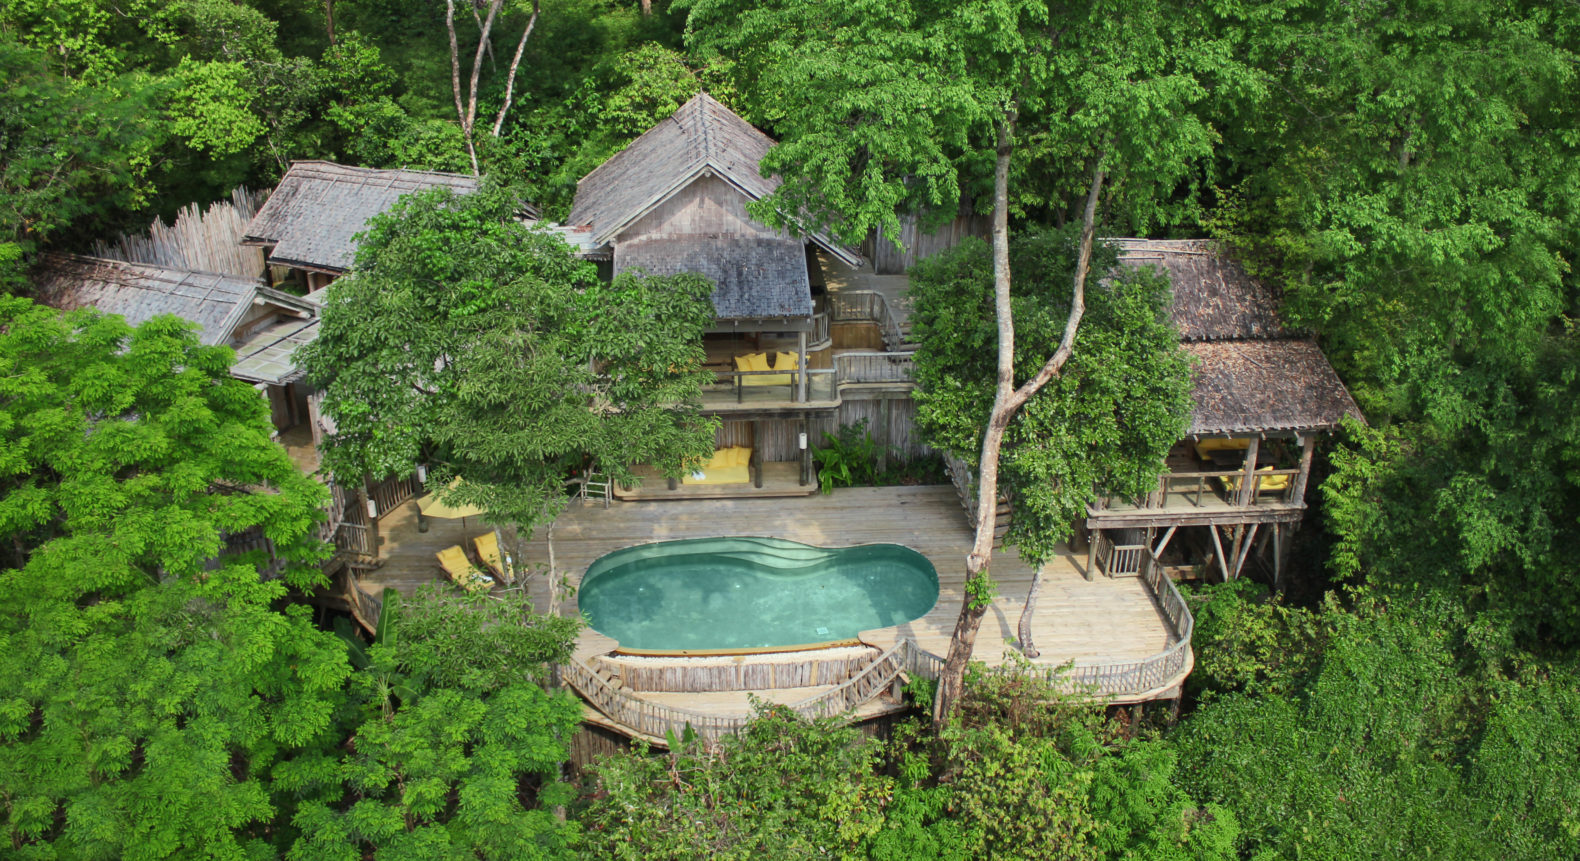 bayview-pool-suite-forest-immersion-soneva-kiri-hotel-thailand-asia